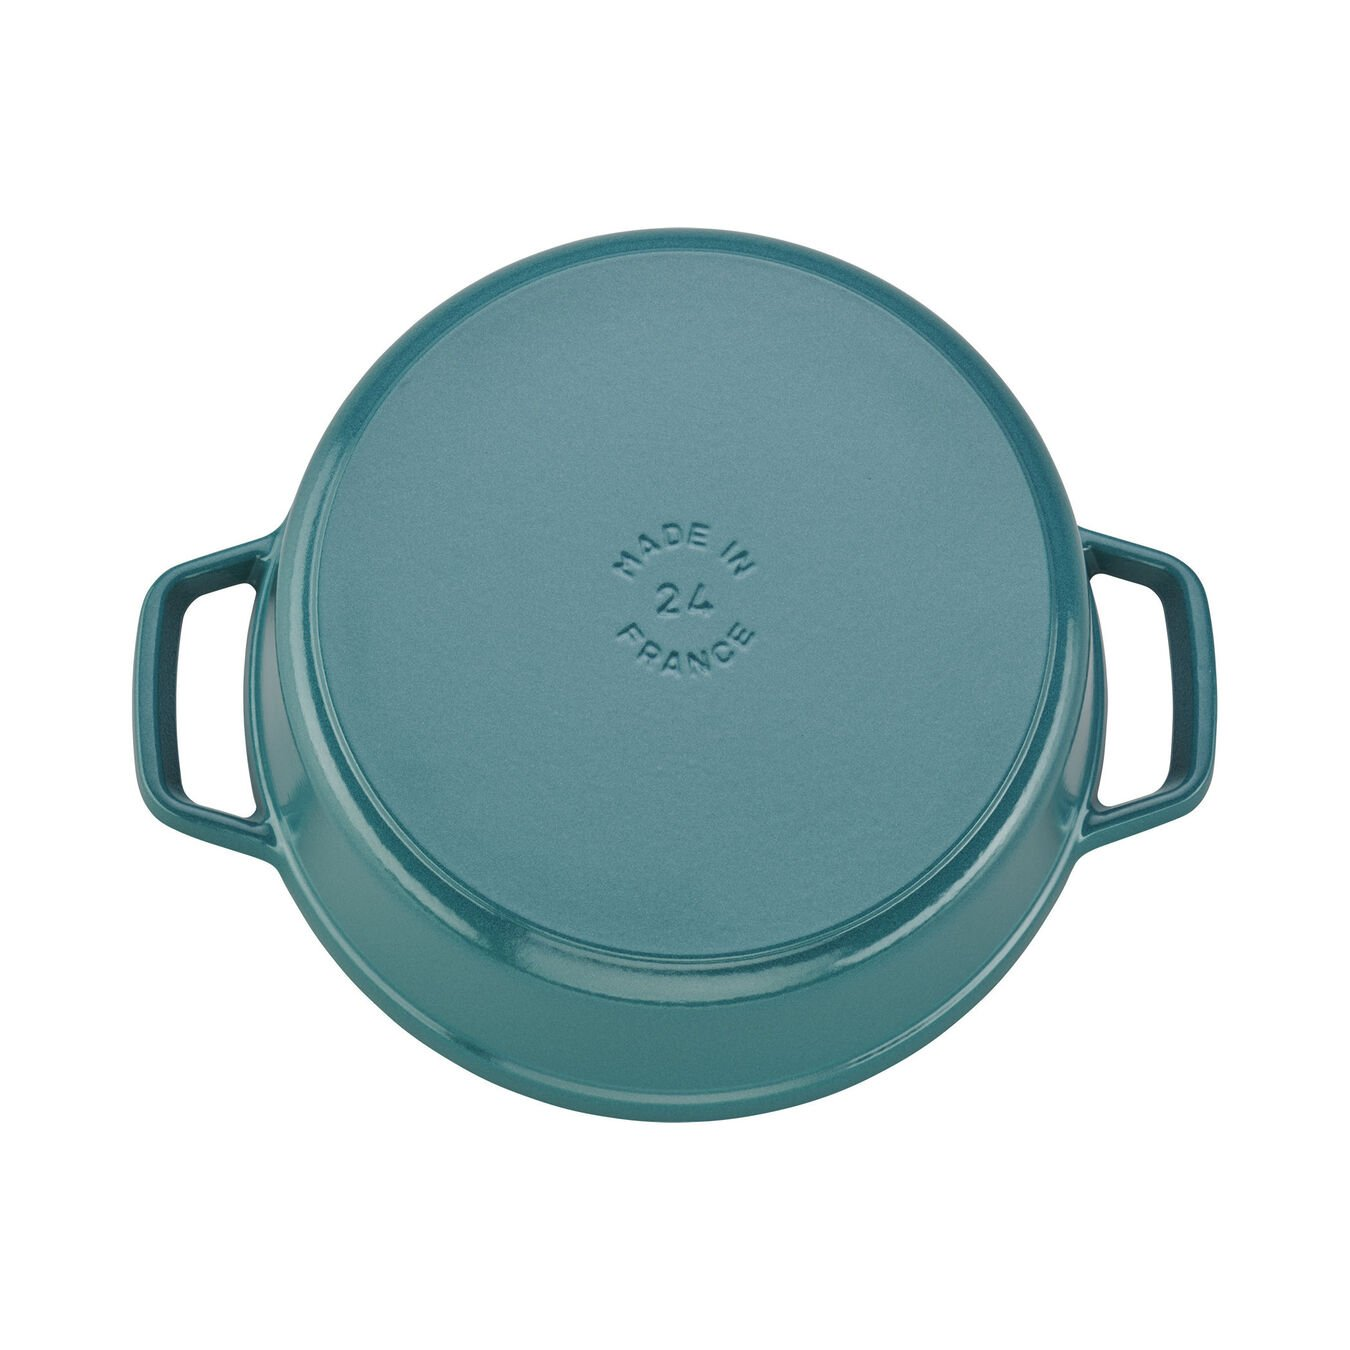 4-qt Round Cocotte - Turquoise,,large 2